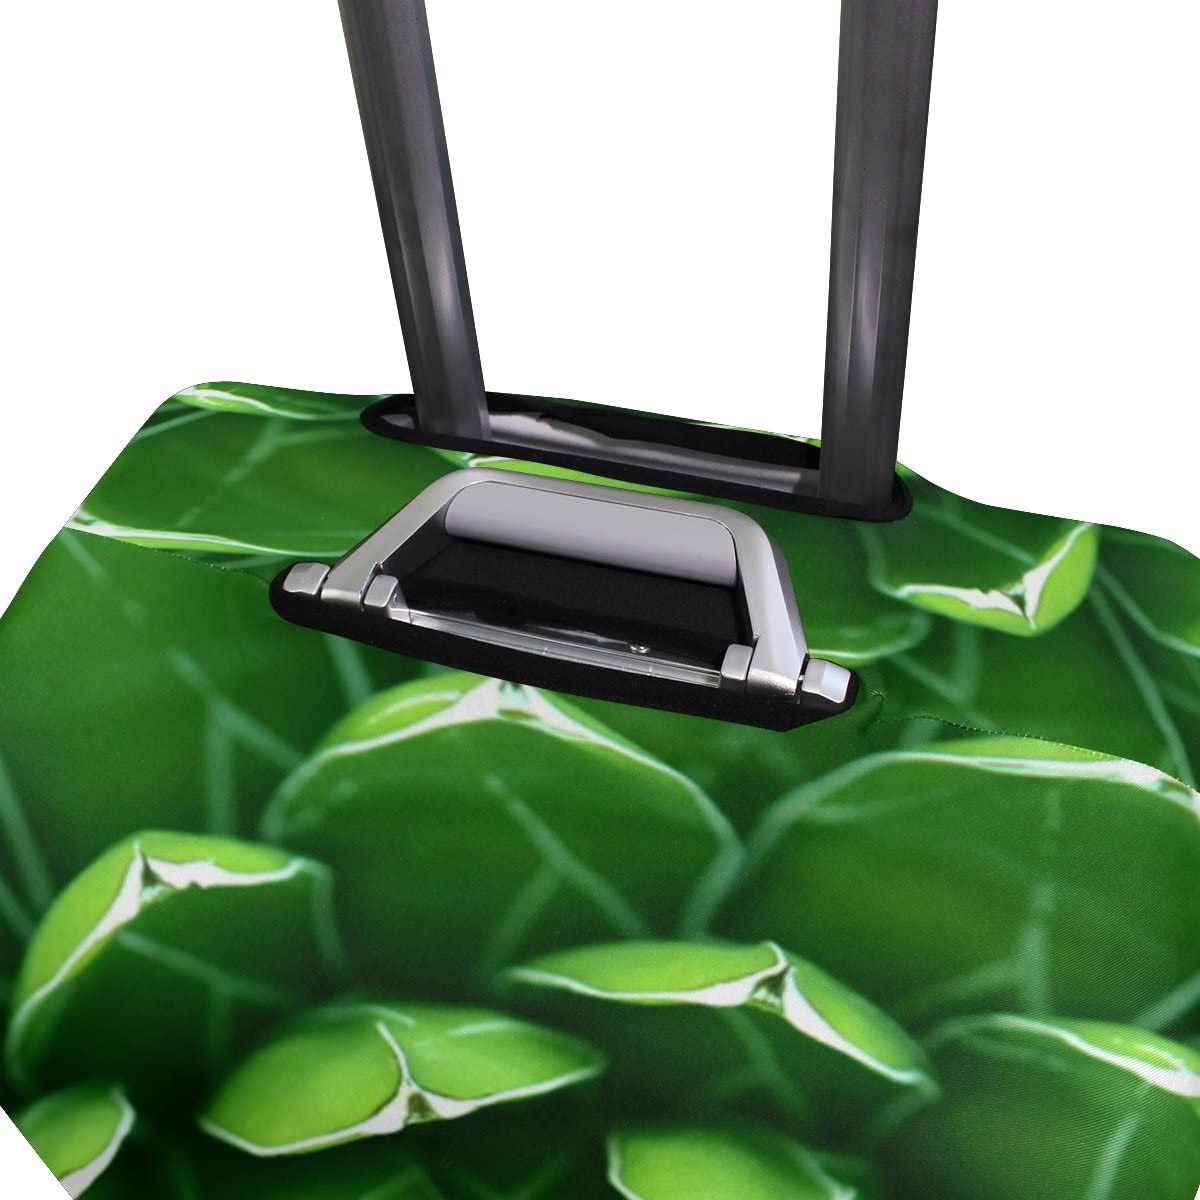 GIOVANIOR Green Cactus Luggage Cover Suitcase Protector Carry On Covers